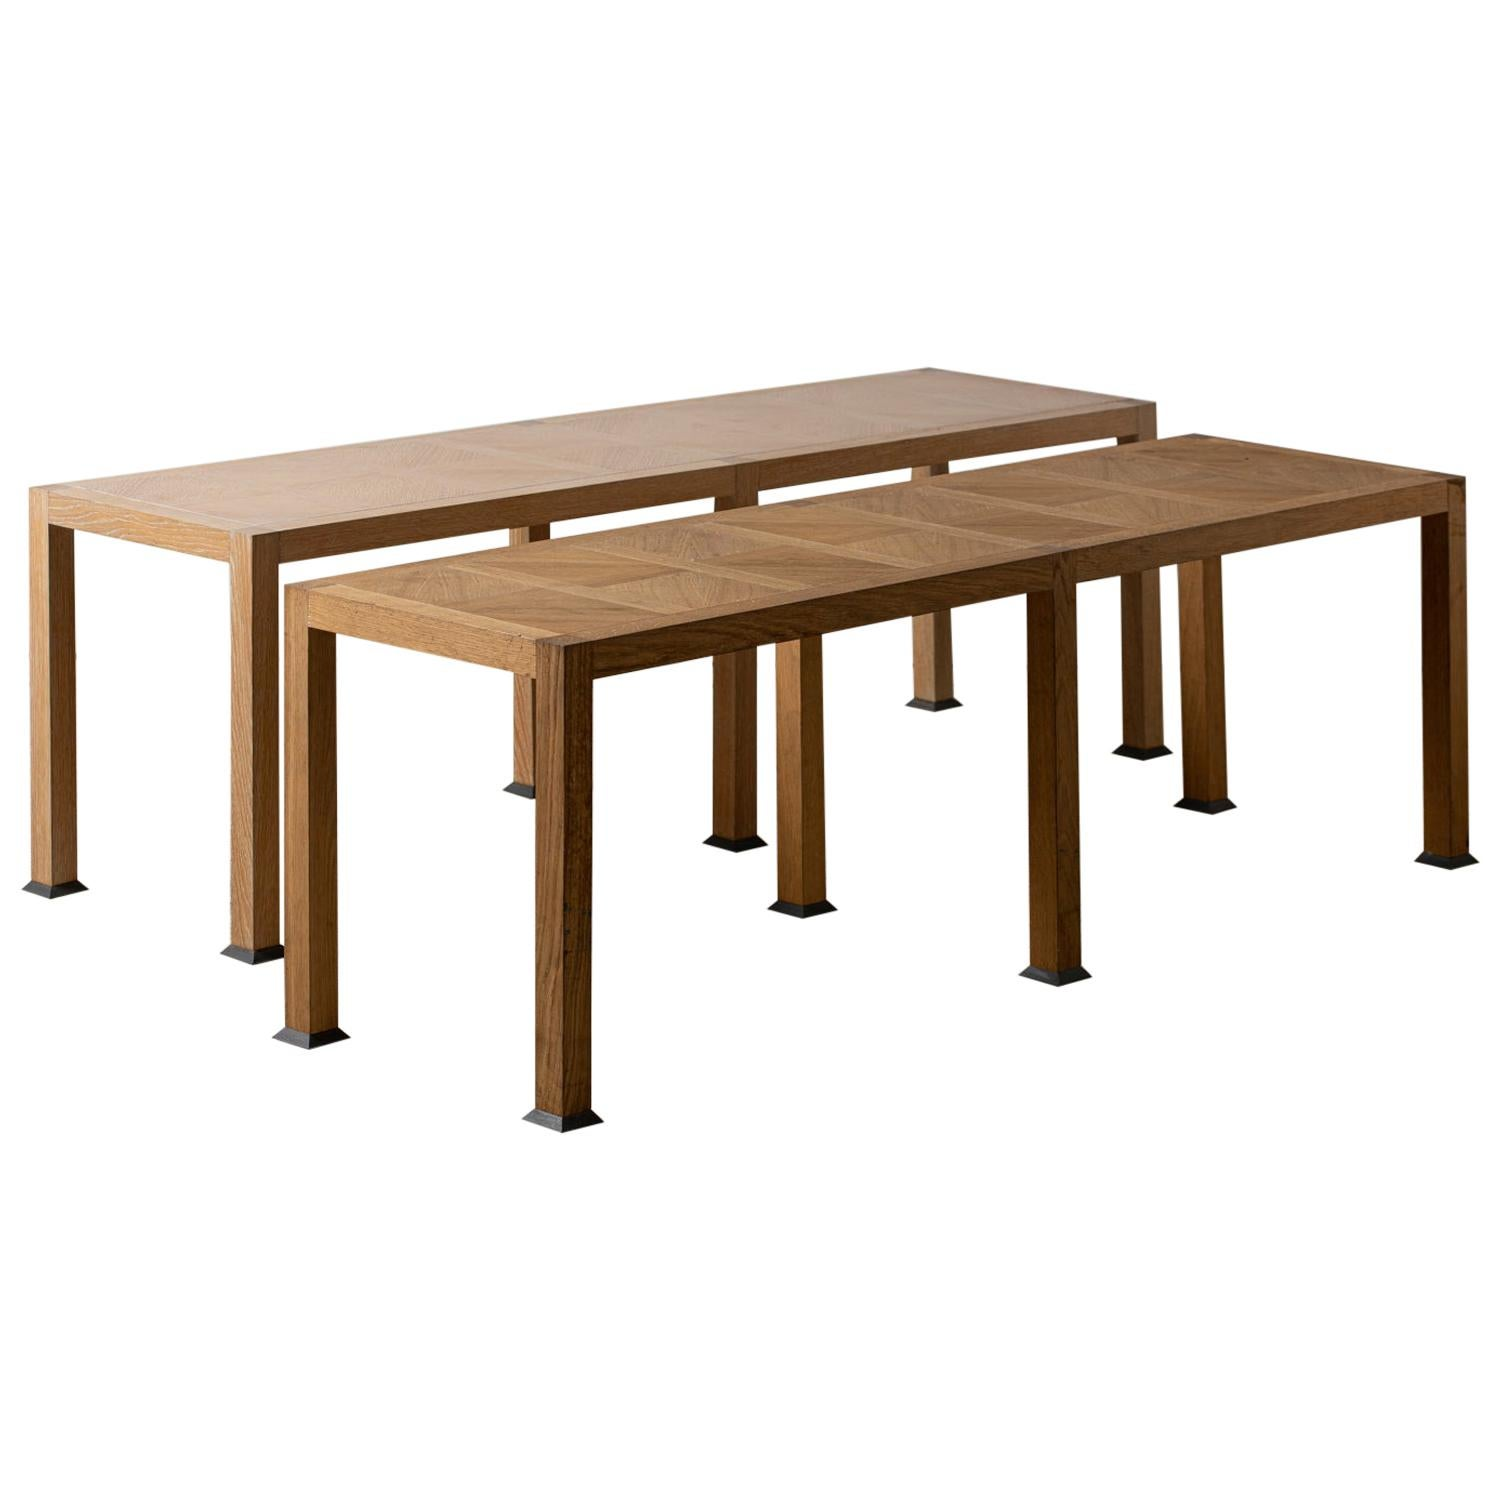 Two Tables or Benches, Ecart International, France, circa 2000